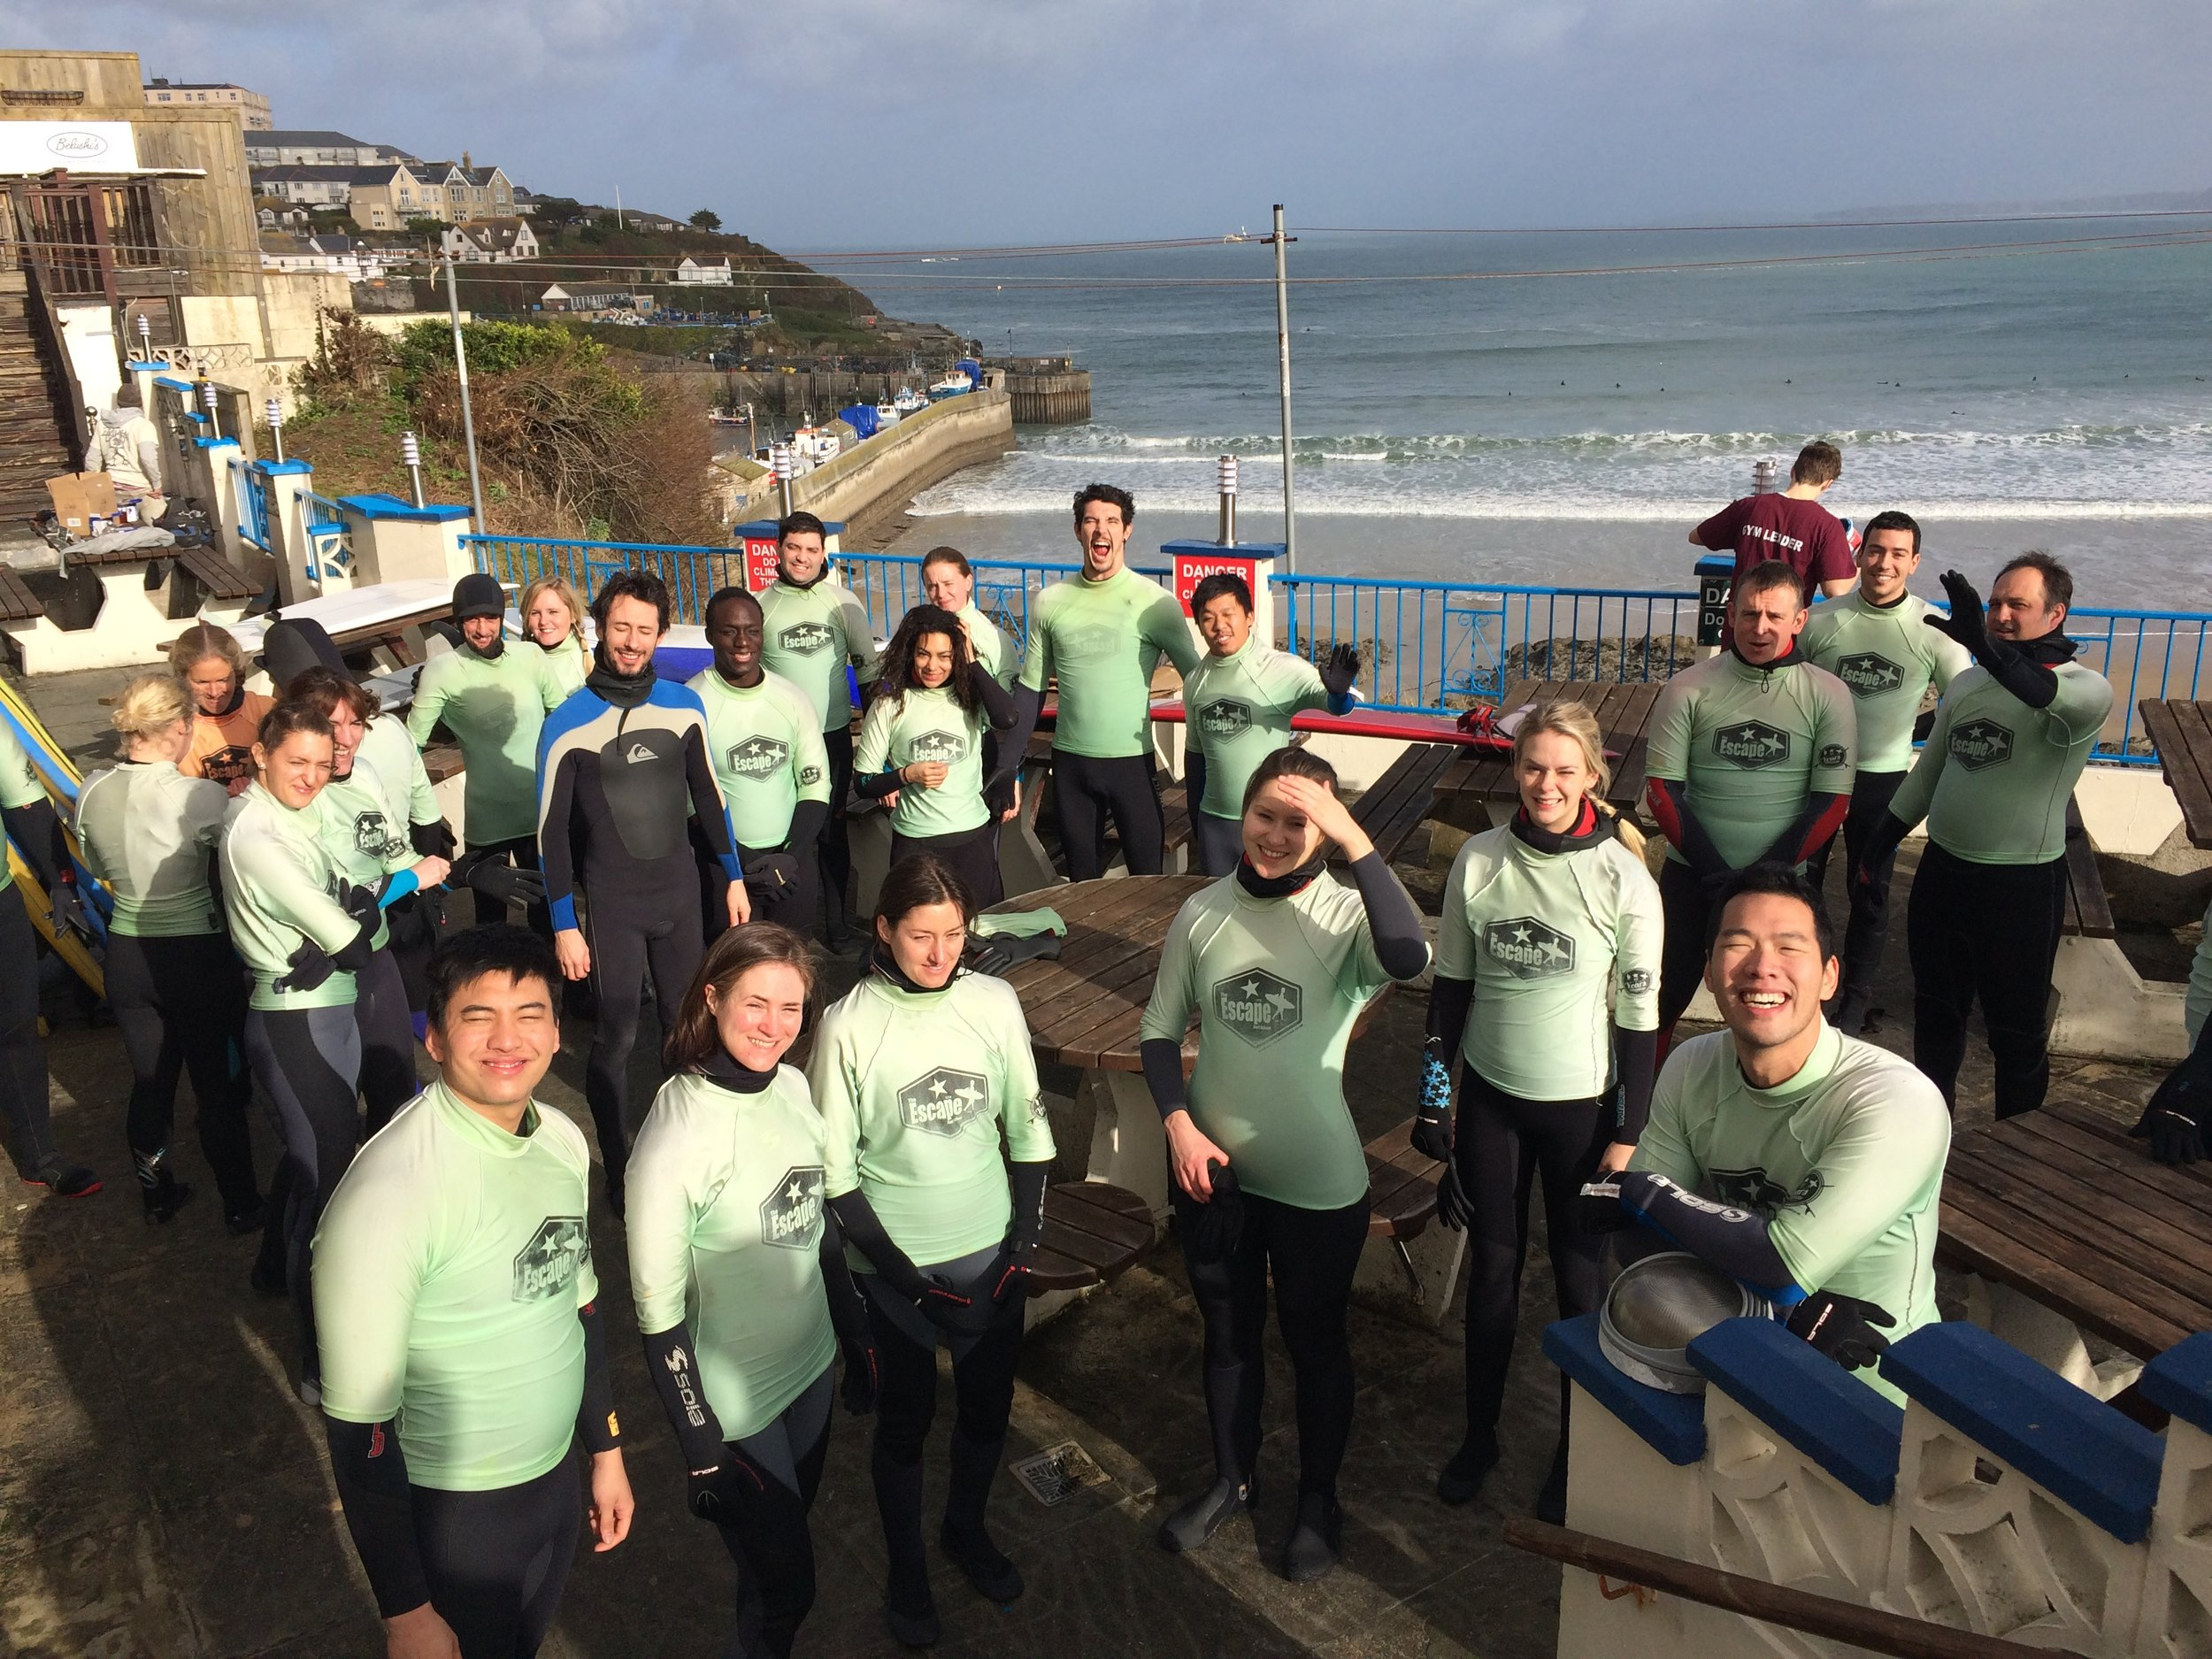 London Surfers Meetup group in Newquay